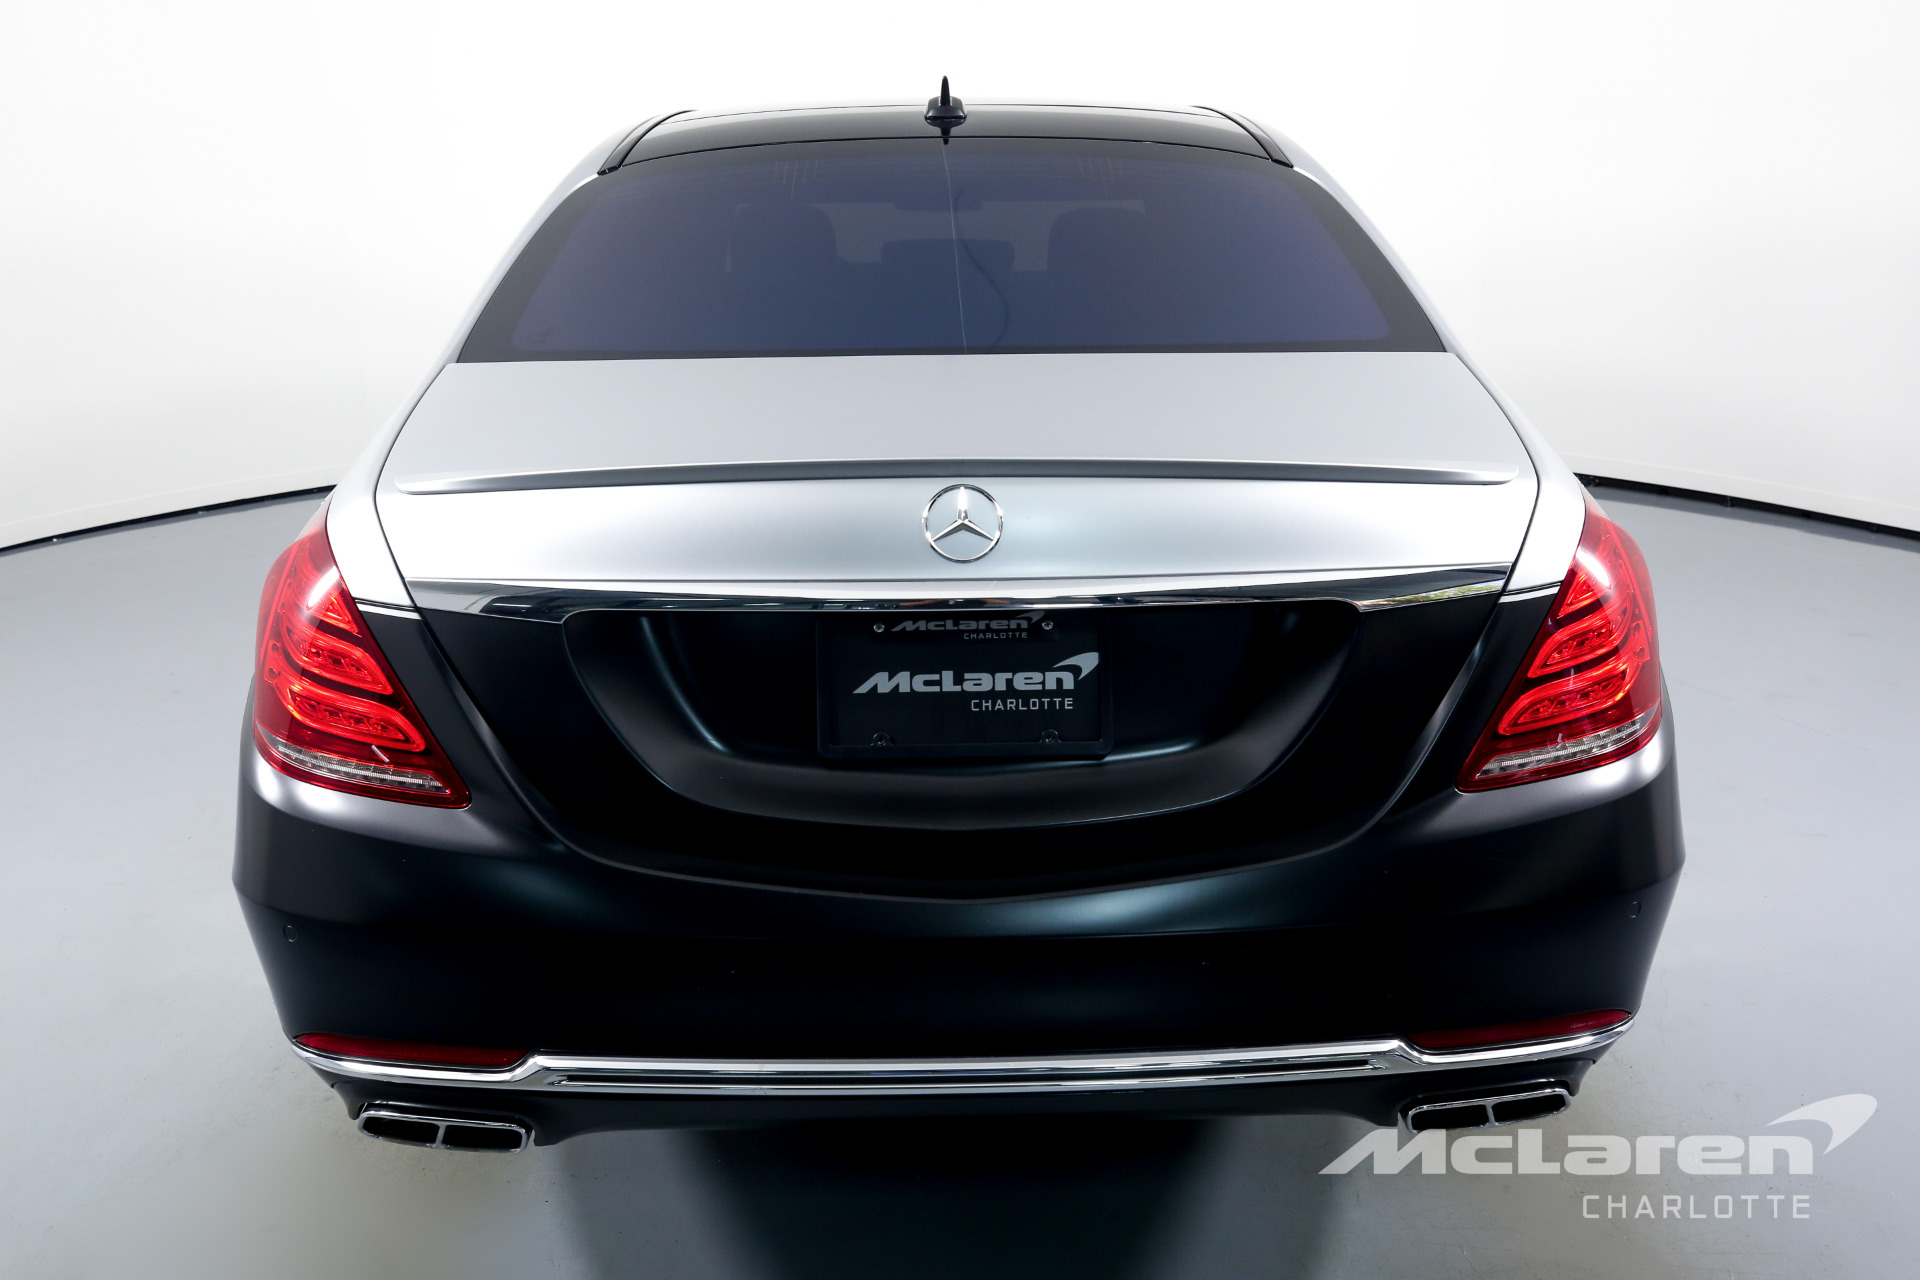 Used 2017 Mercedes-Benz S-Class Mercedes-Maybach S 550 4MATIC | Charlotte, NC